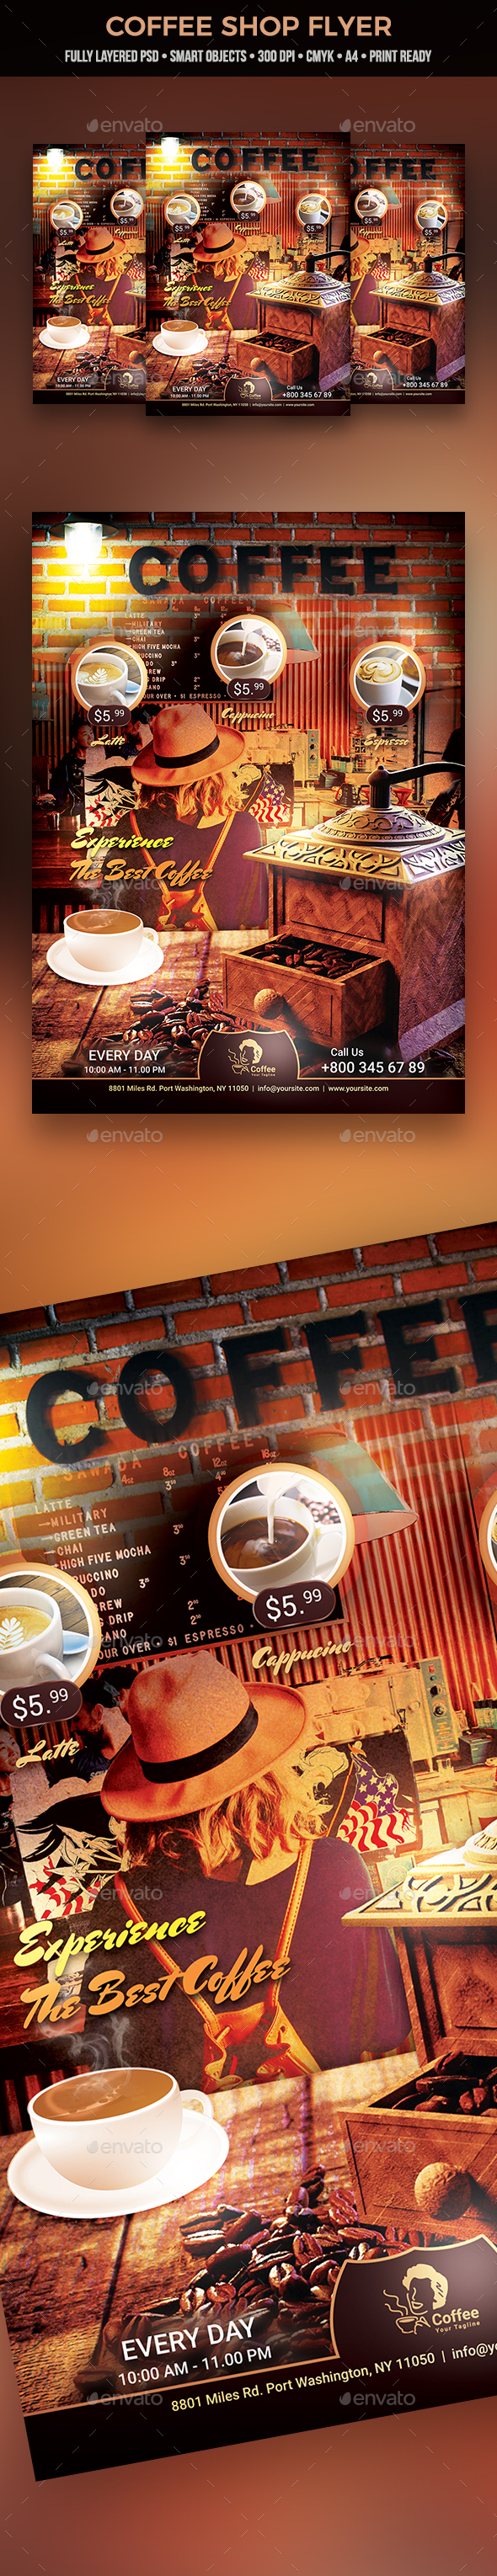 Coffee Shop Flyer - Restaurant Flyers